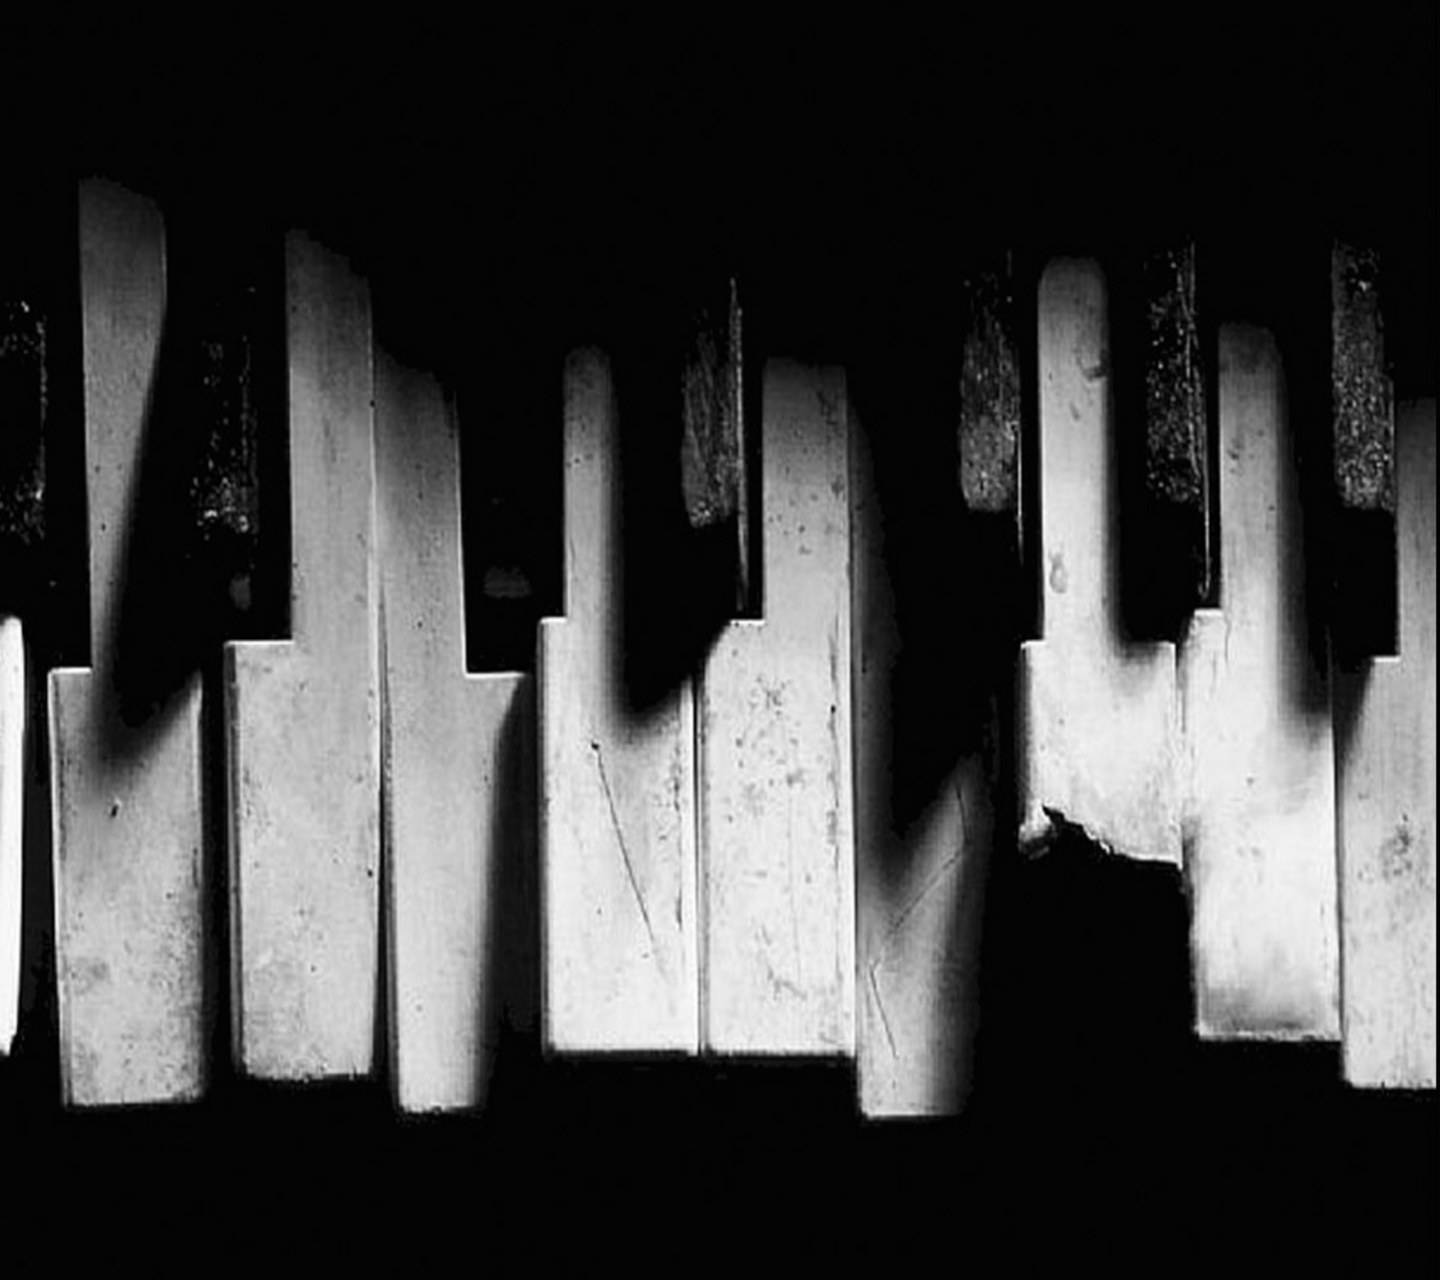 Broken Piano Keys Wallpaper By __JULIANNA__